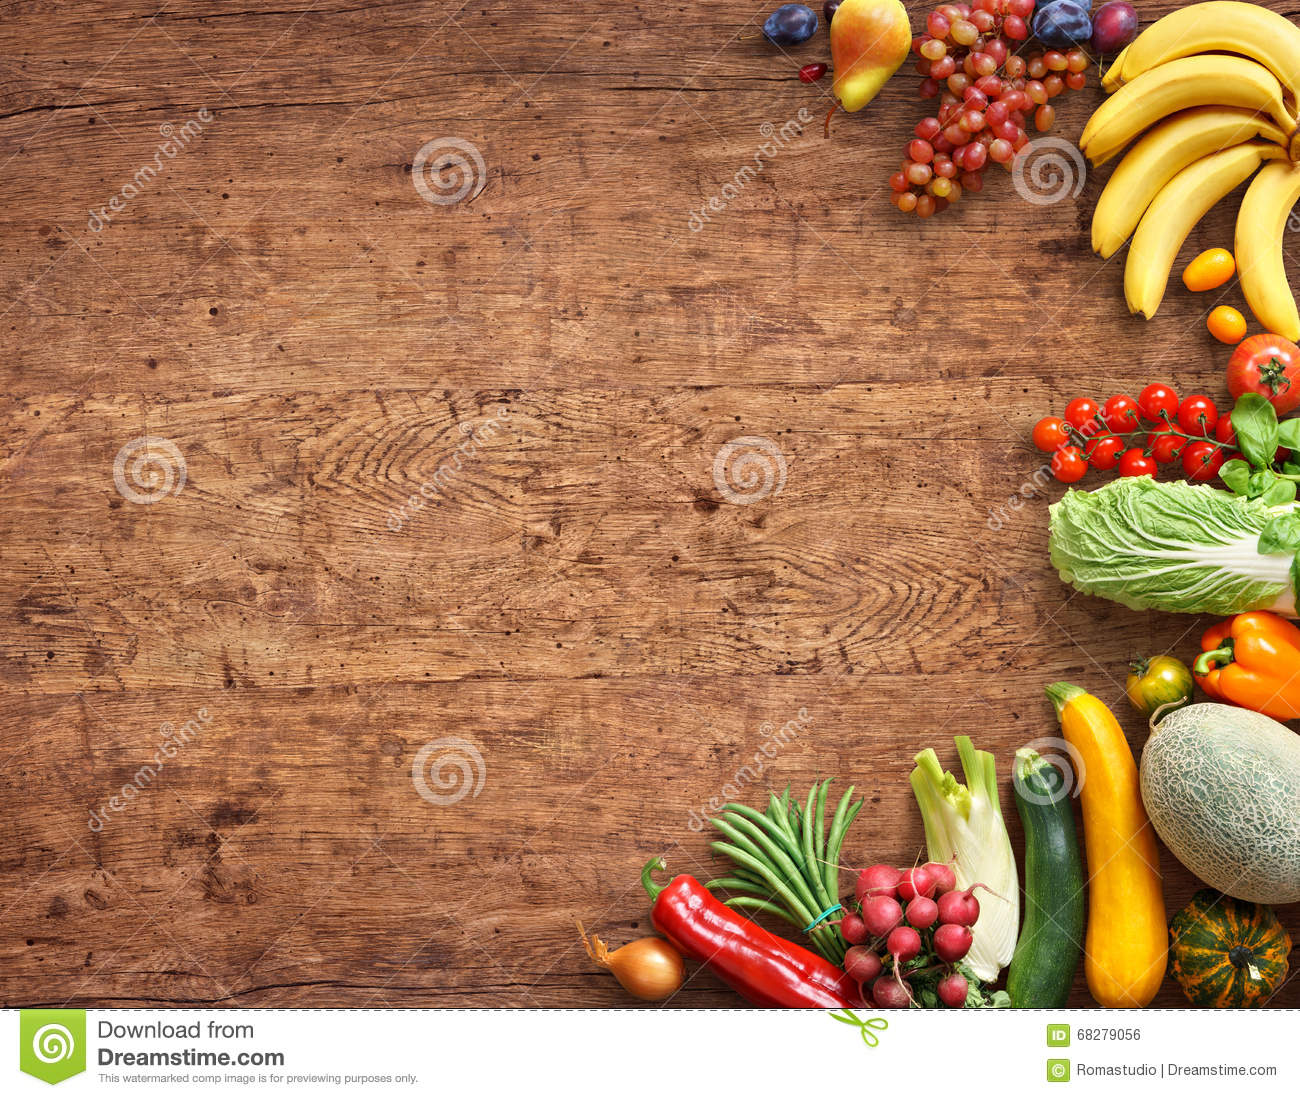 Food background studio photo of different fruits and vegetables - Background Different Food Fruits Healthy High Photography Product Resolution Rustic Studio Table Vegetables